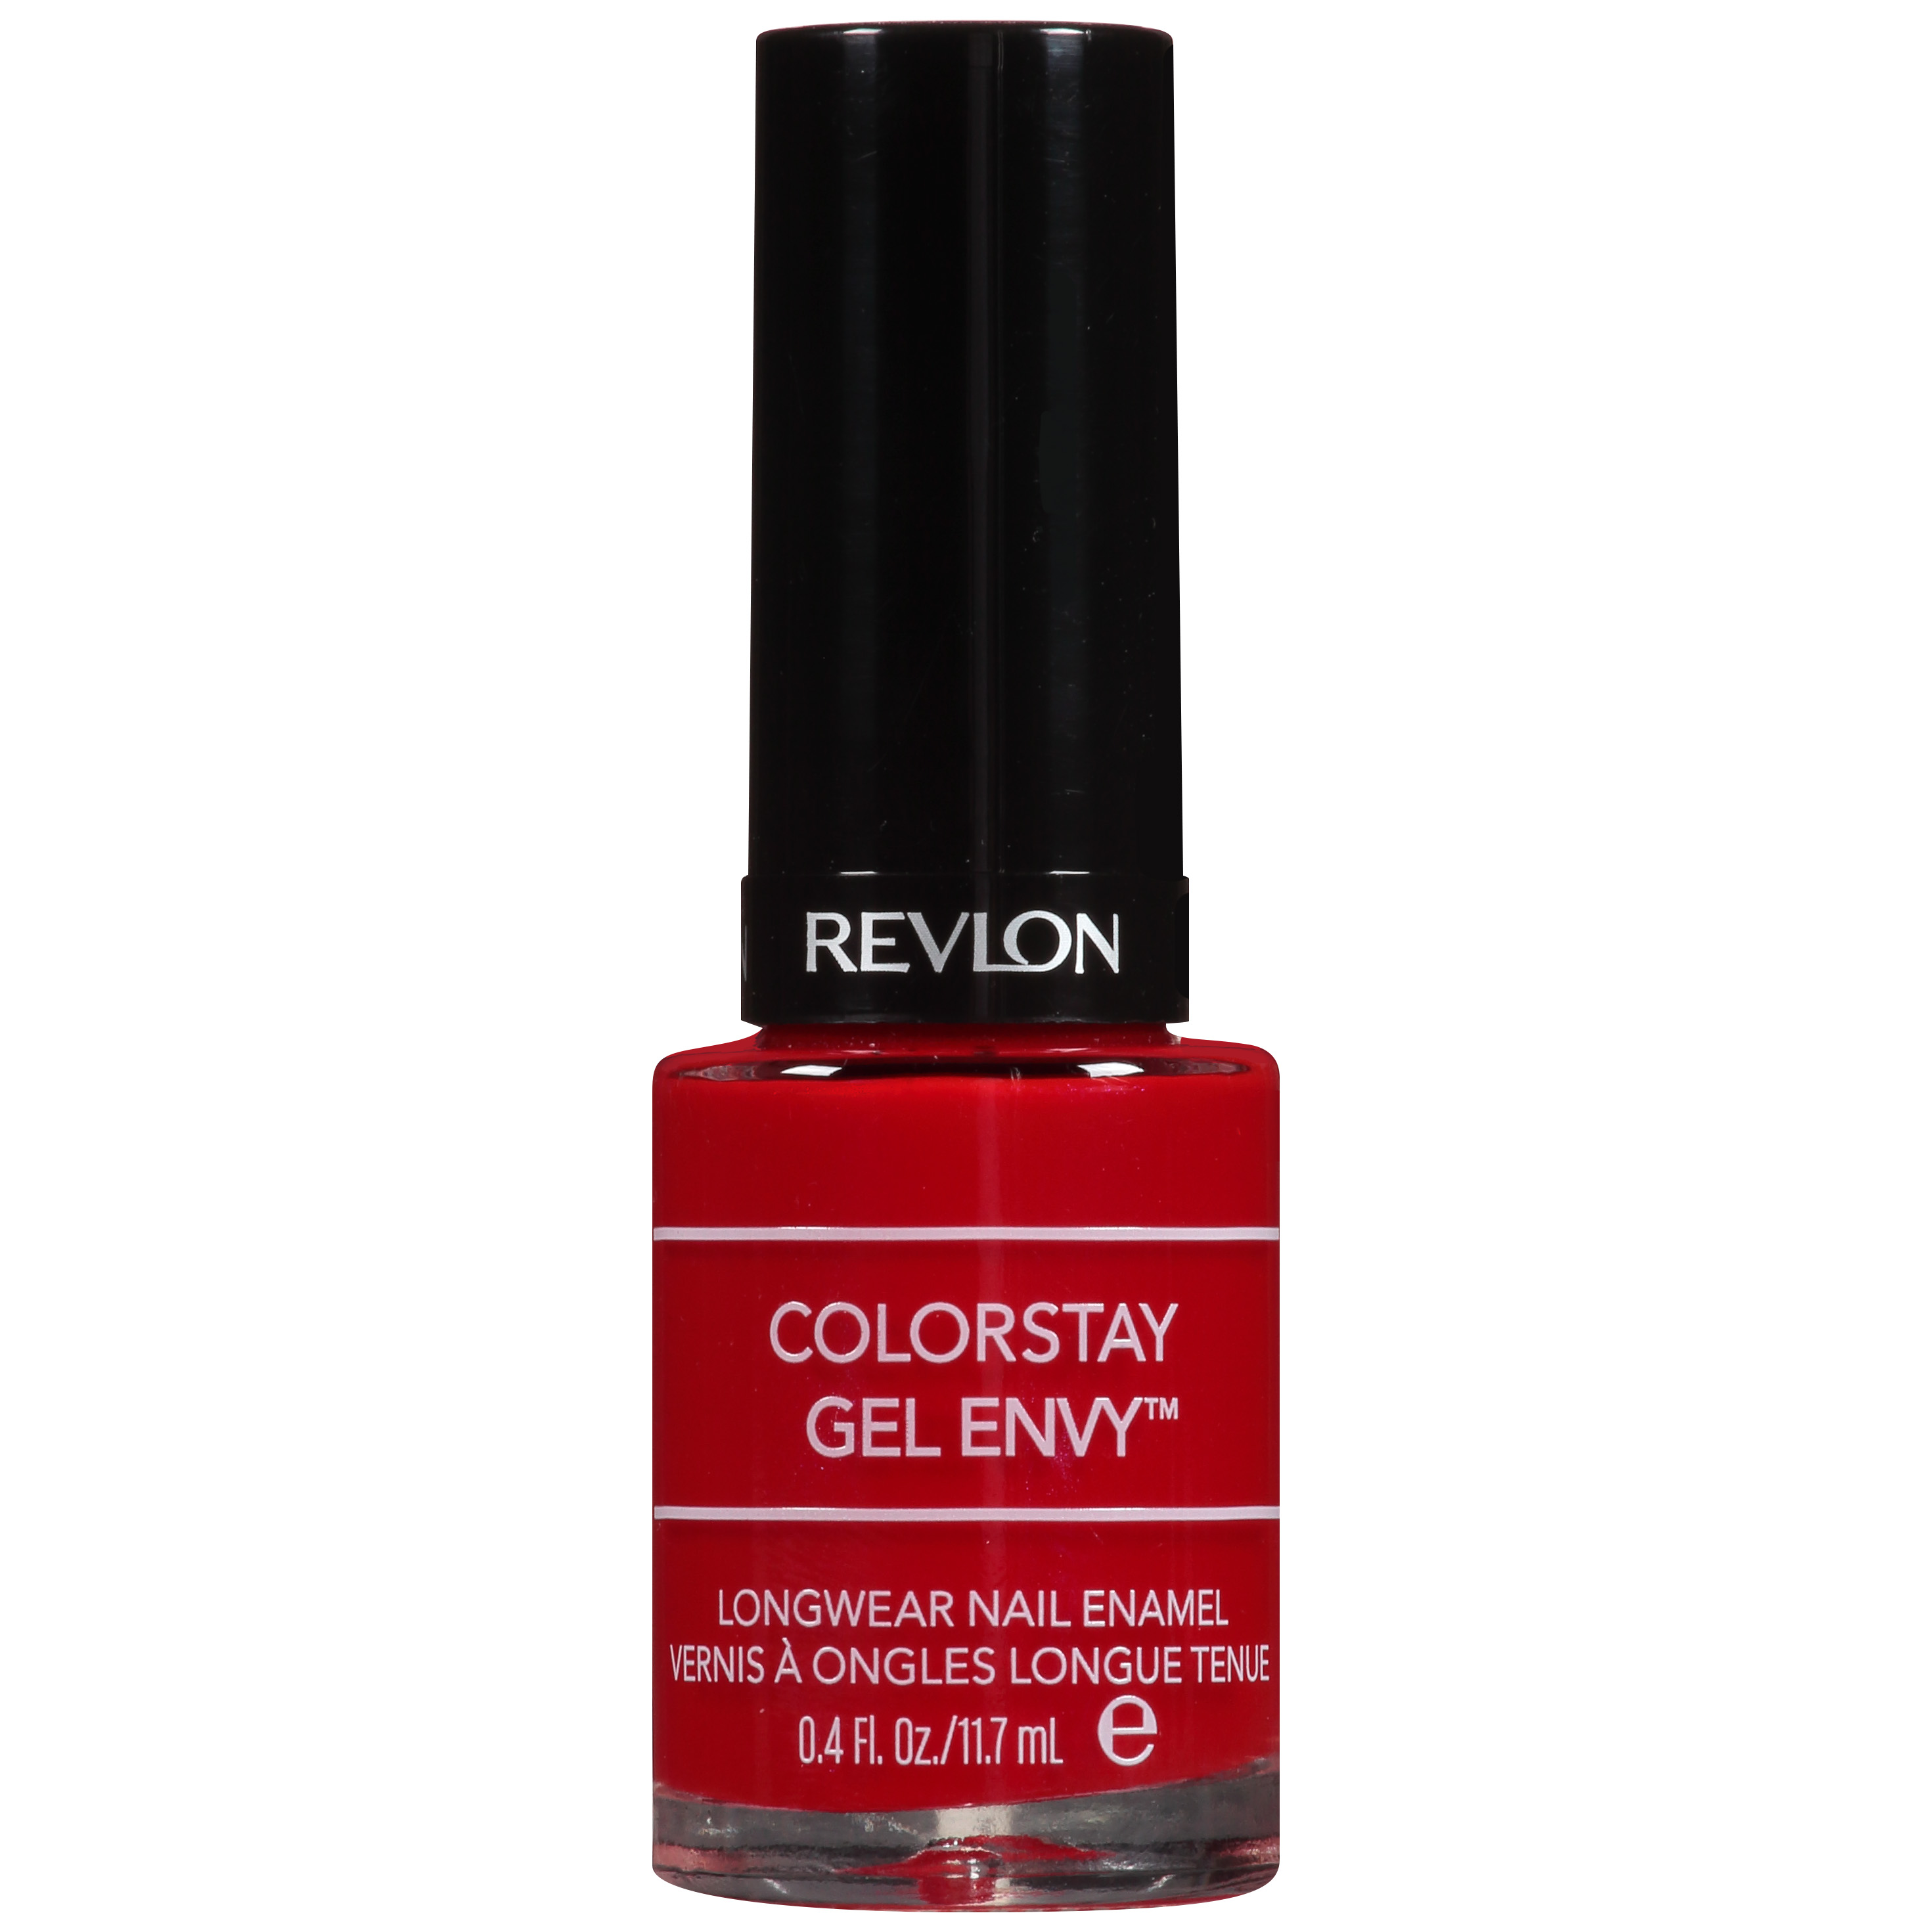 Revlon ColorStay Gel Envy Longwear Nail Enamel All on Red, 0.4 fl oz